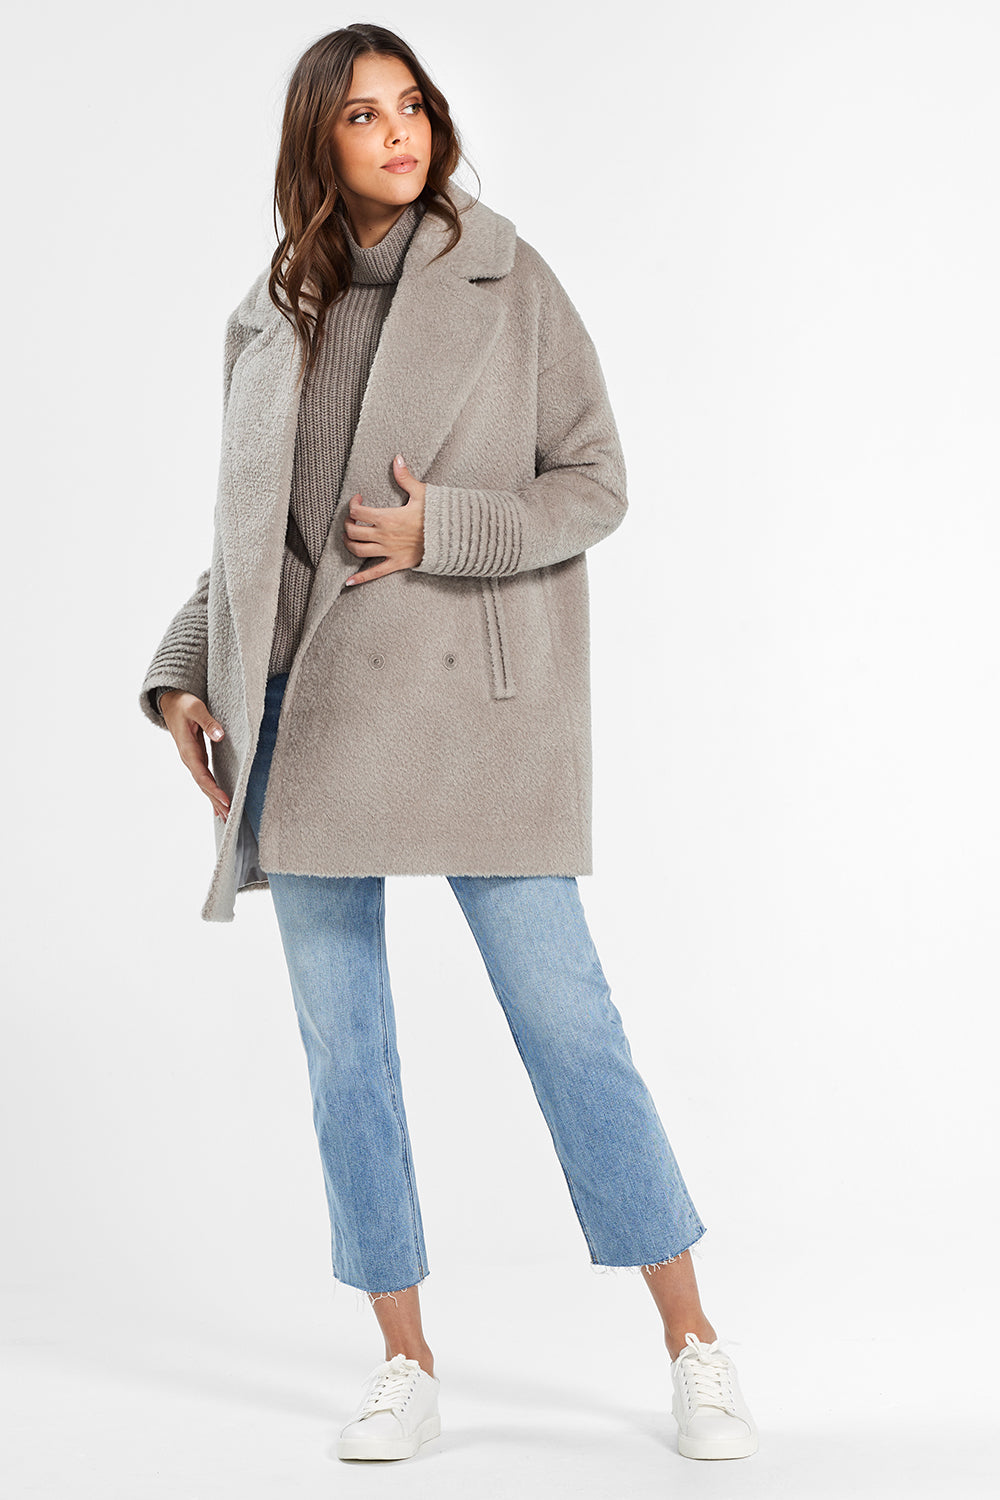 Sentaler Bouclé Alpaca Mid Length Oversized Notched Collar Coat featured in Bouclé Alpaca and available in Sand. Seen open.